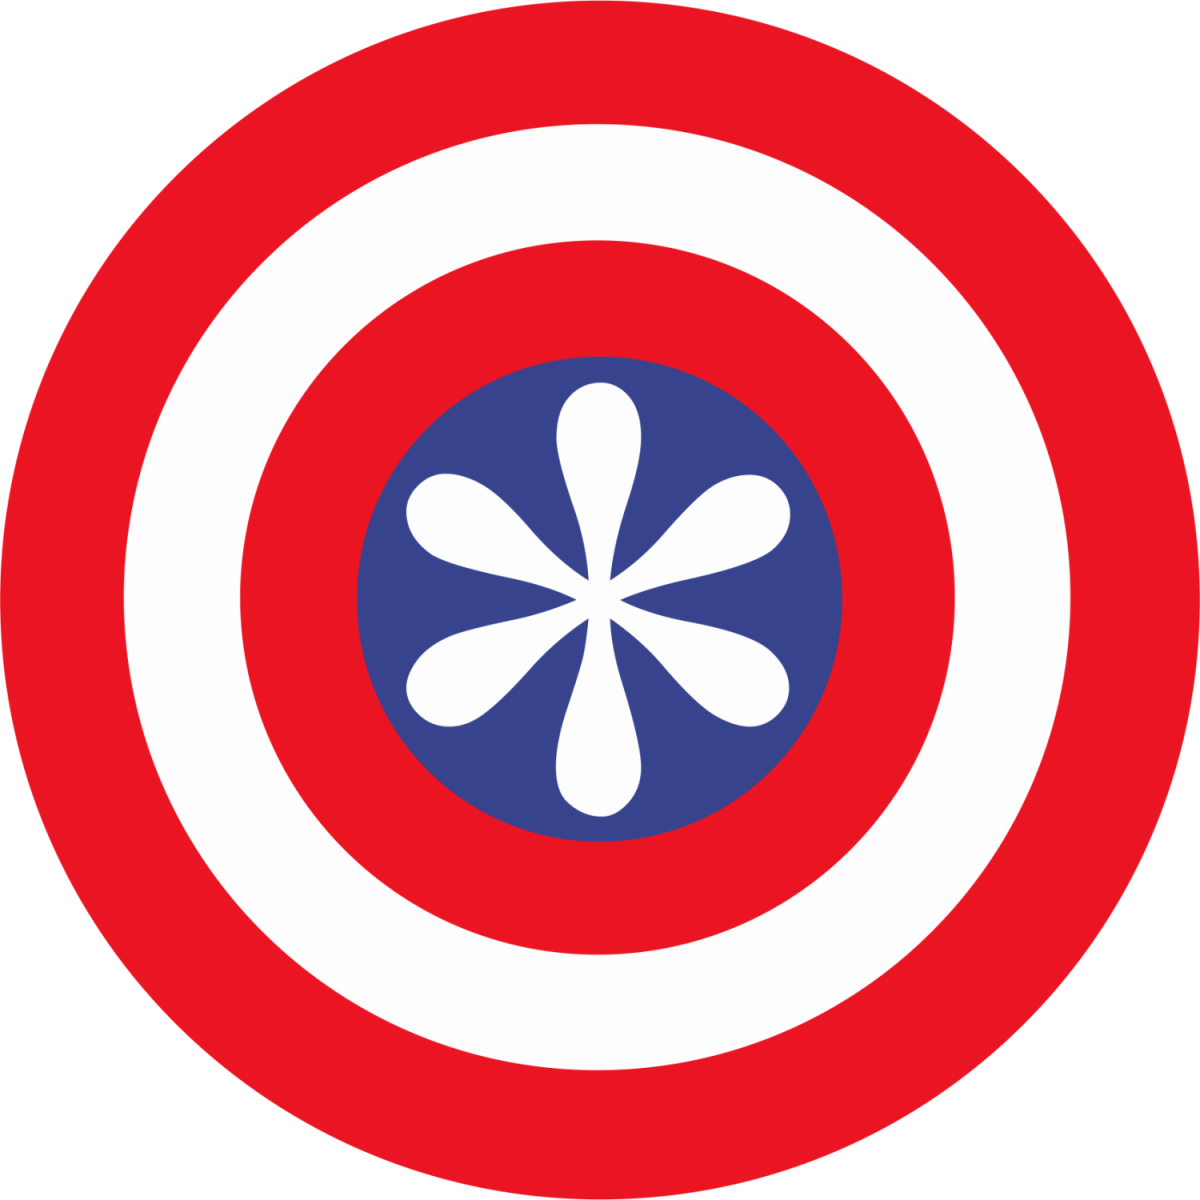 70761481_CaptainAsterisk.thumb.png.4bb6d589ff14a1cd1450dcb166d60817.png